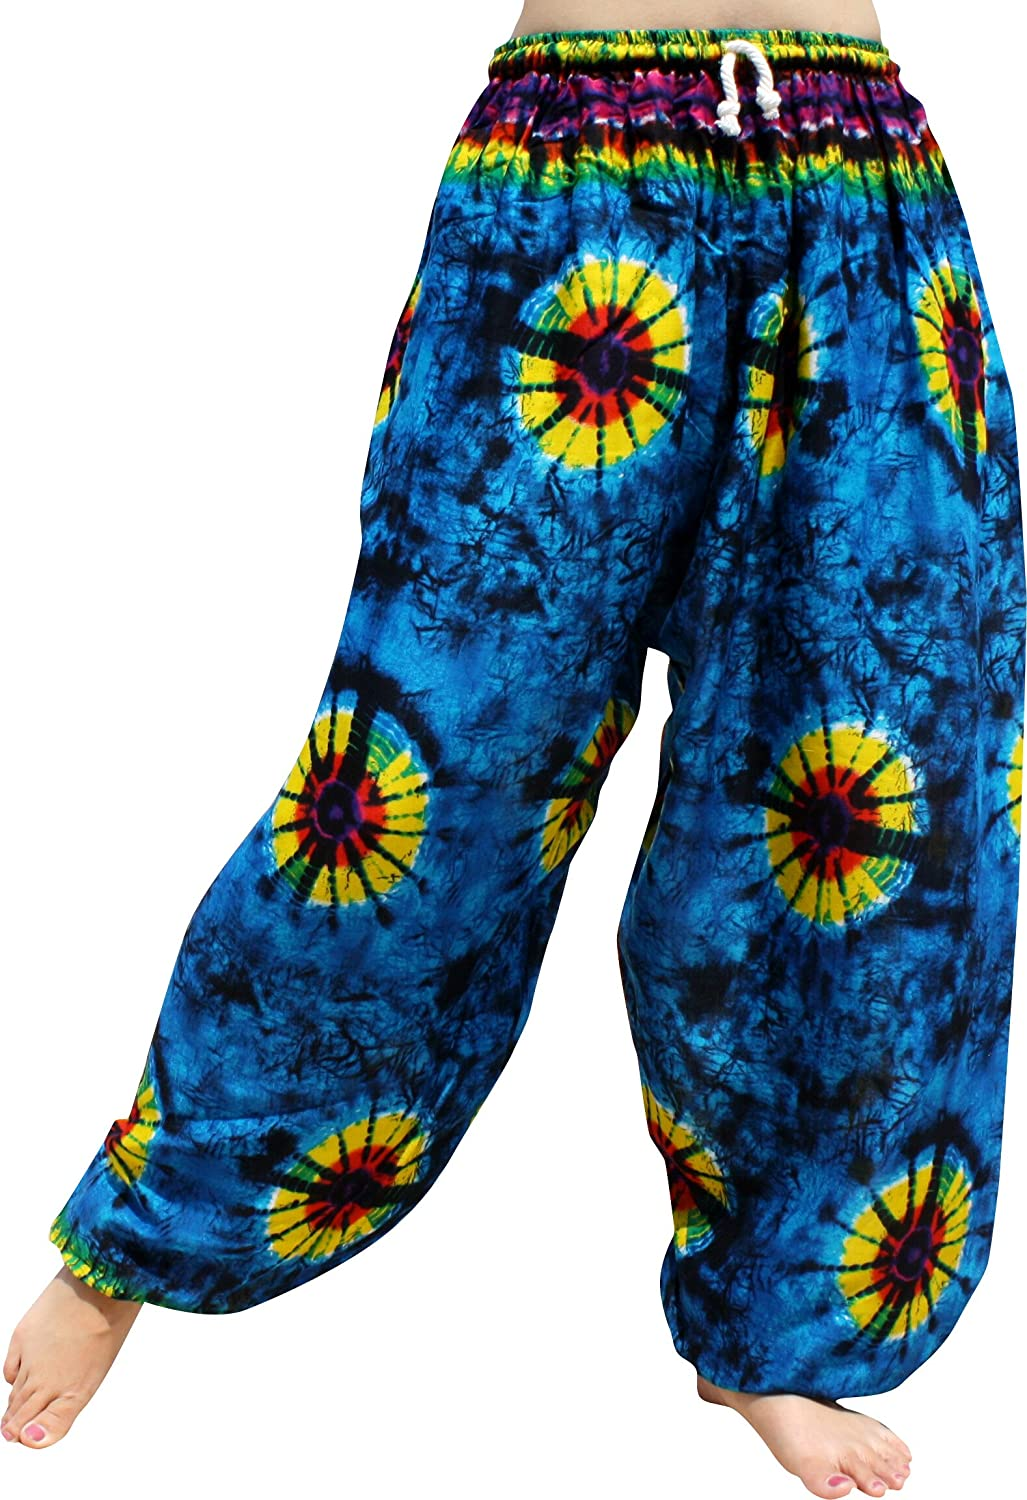 Full Funk Funk PANTS Large Large|Tie メンズ B07DPLGN32 Large|Tie Dye Blue Tie Dye Blue Large, 手仕上げ印鑑 川島:fe071eb4 --- ijpba.info